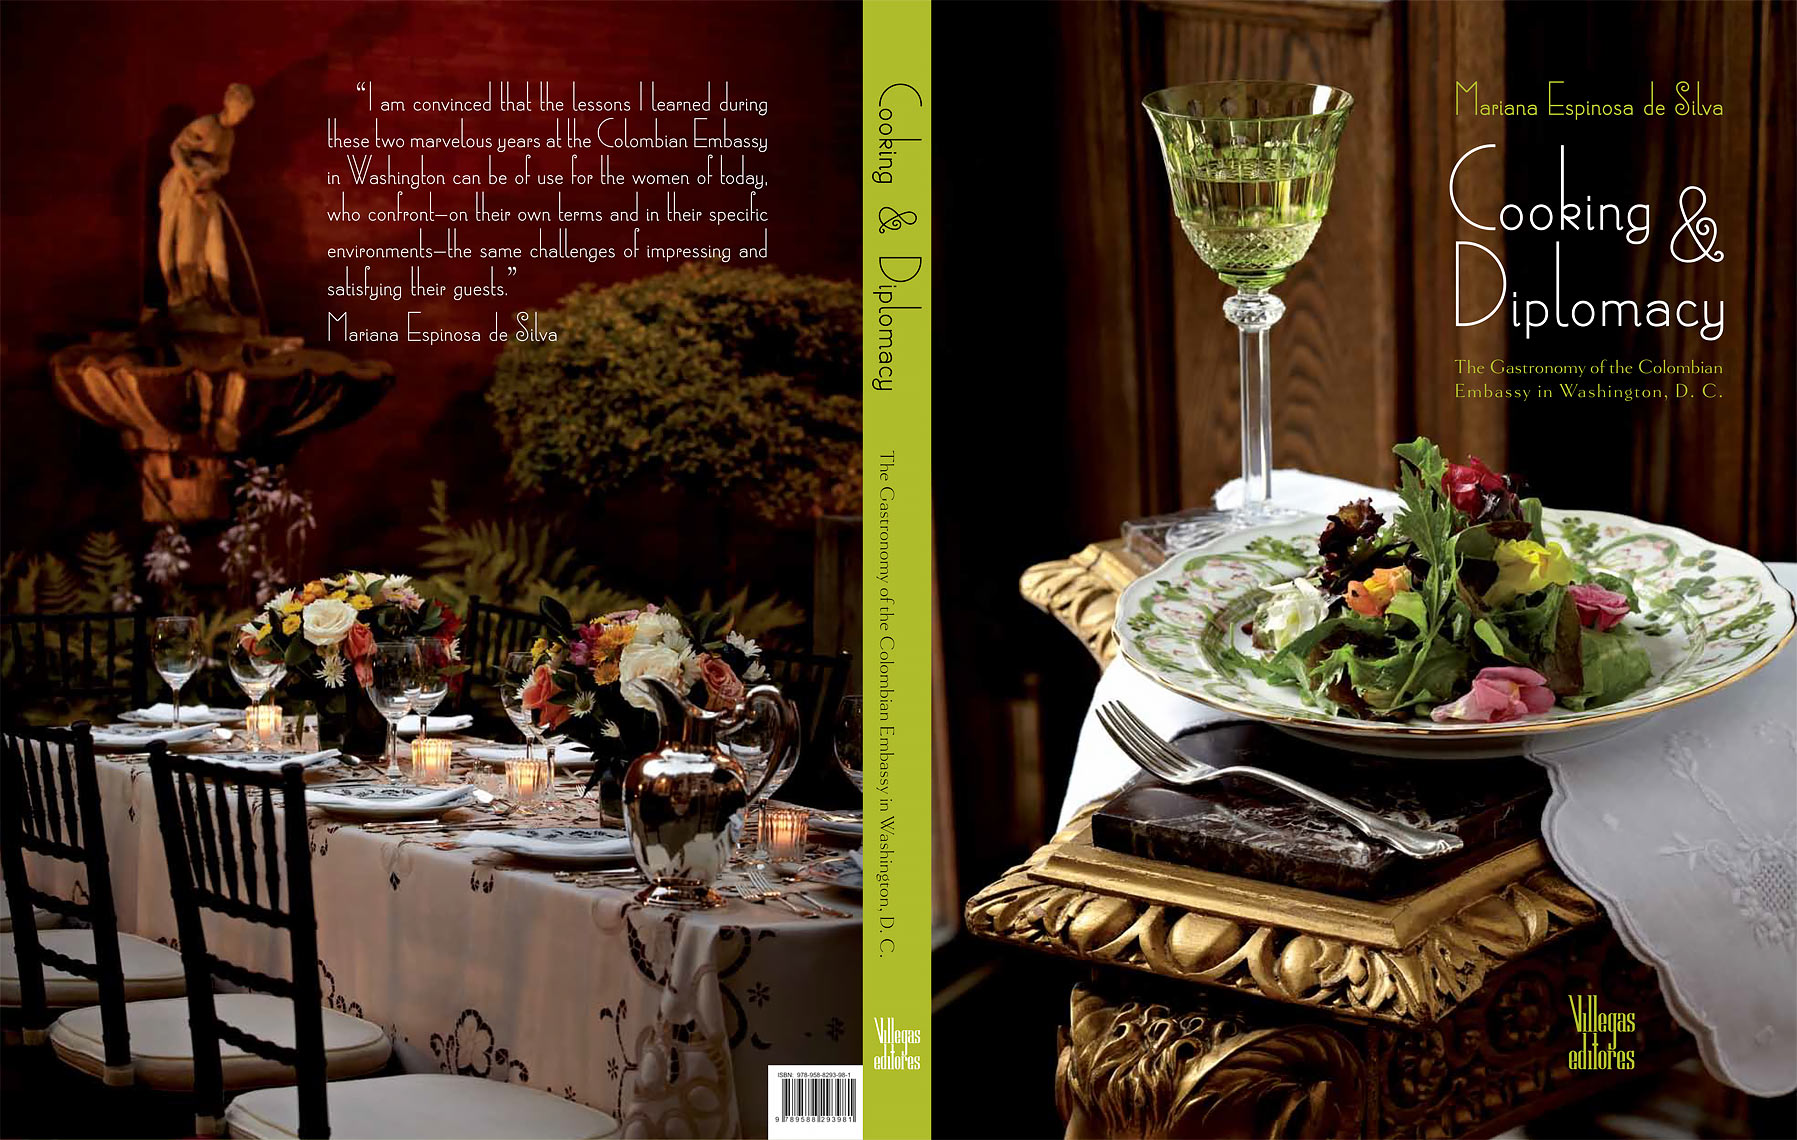 FOOD-Cookbooks1-Embassy_Book